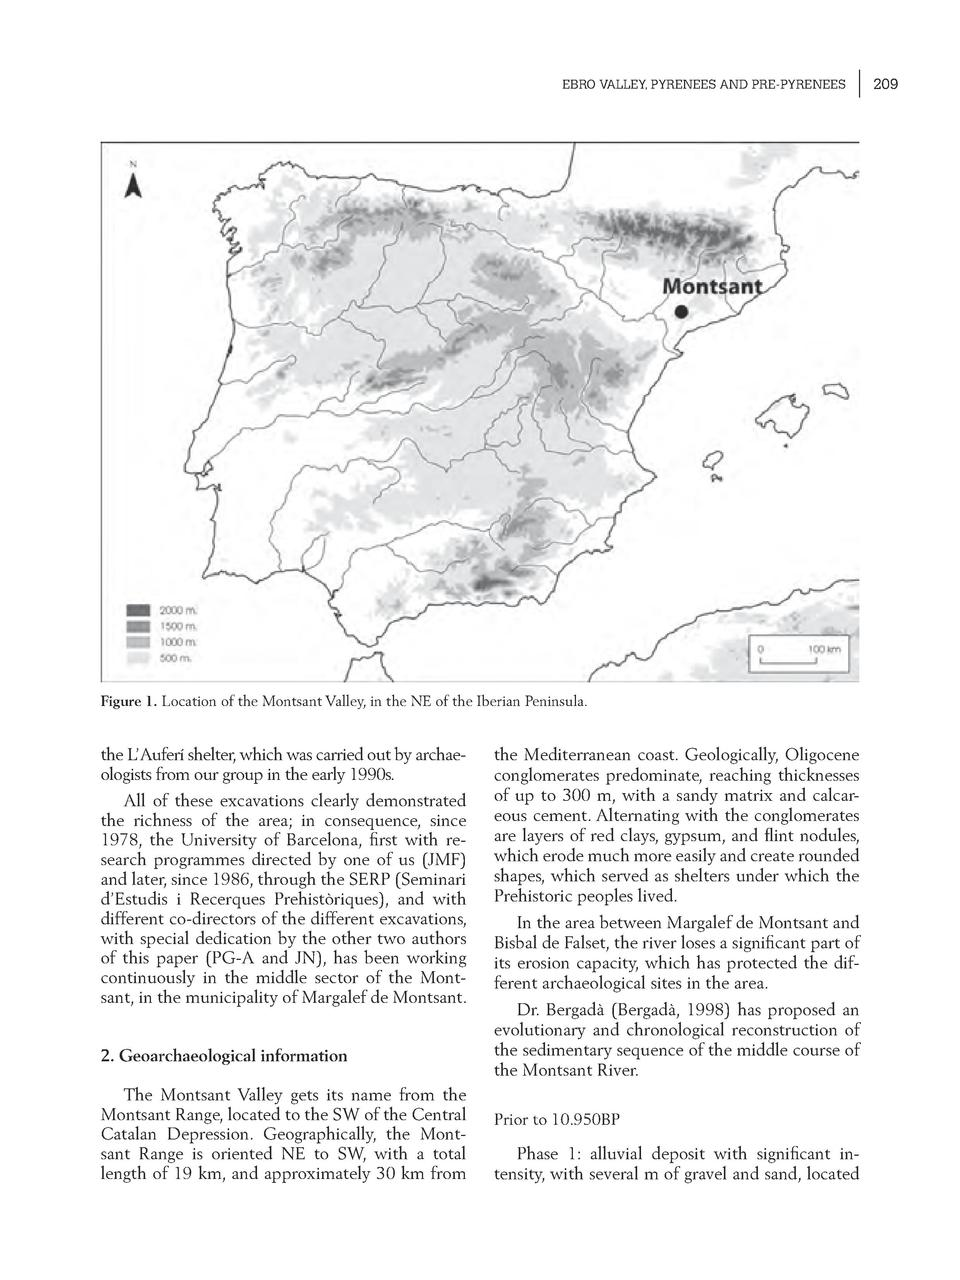 EBRO VALLEY, PYRENEES AND PRE-PYRENEES  Figure 1. Location of the Montsant Valley, in the NE of the Iberian Peninsula.  th...